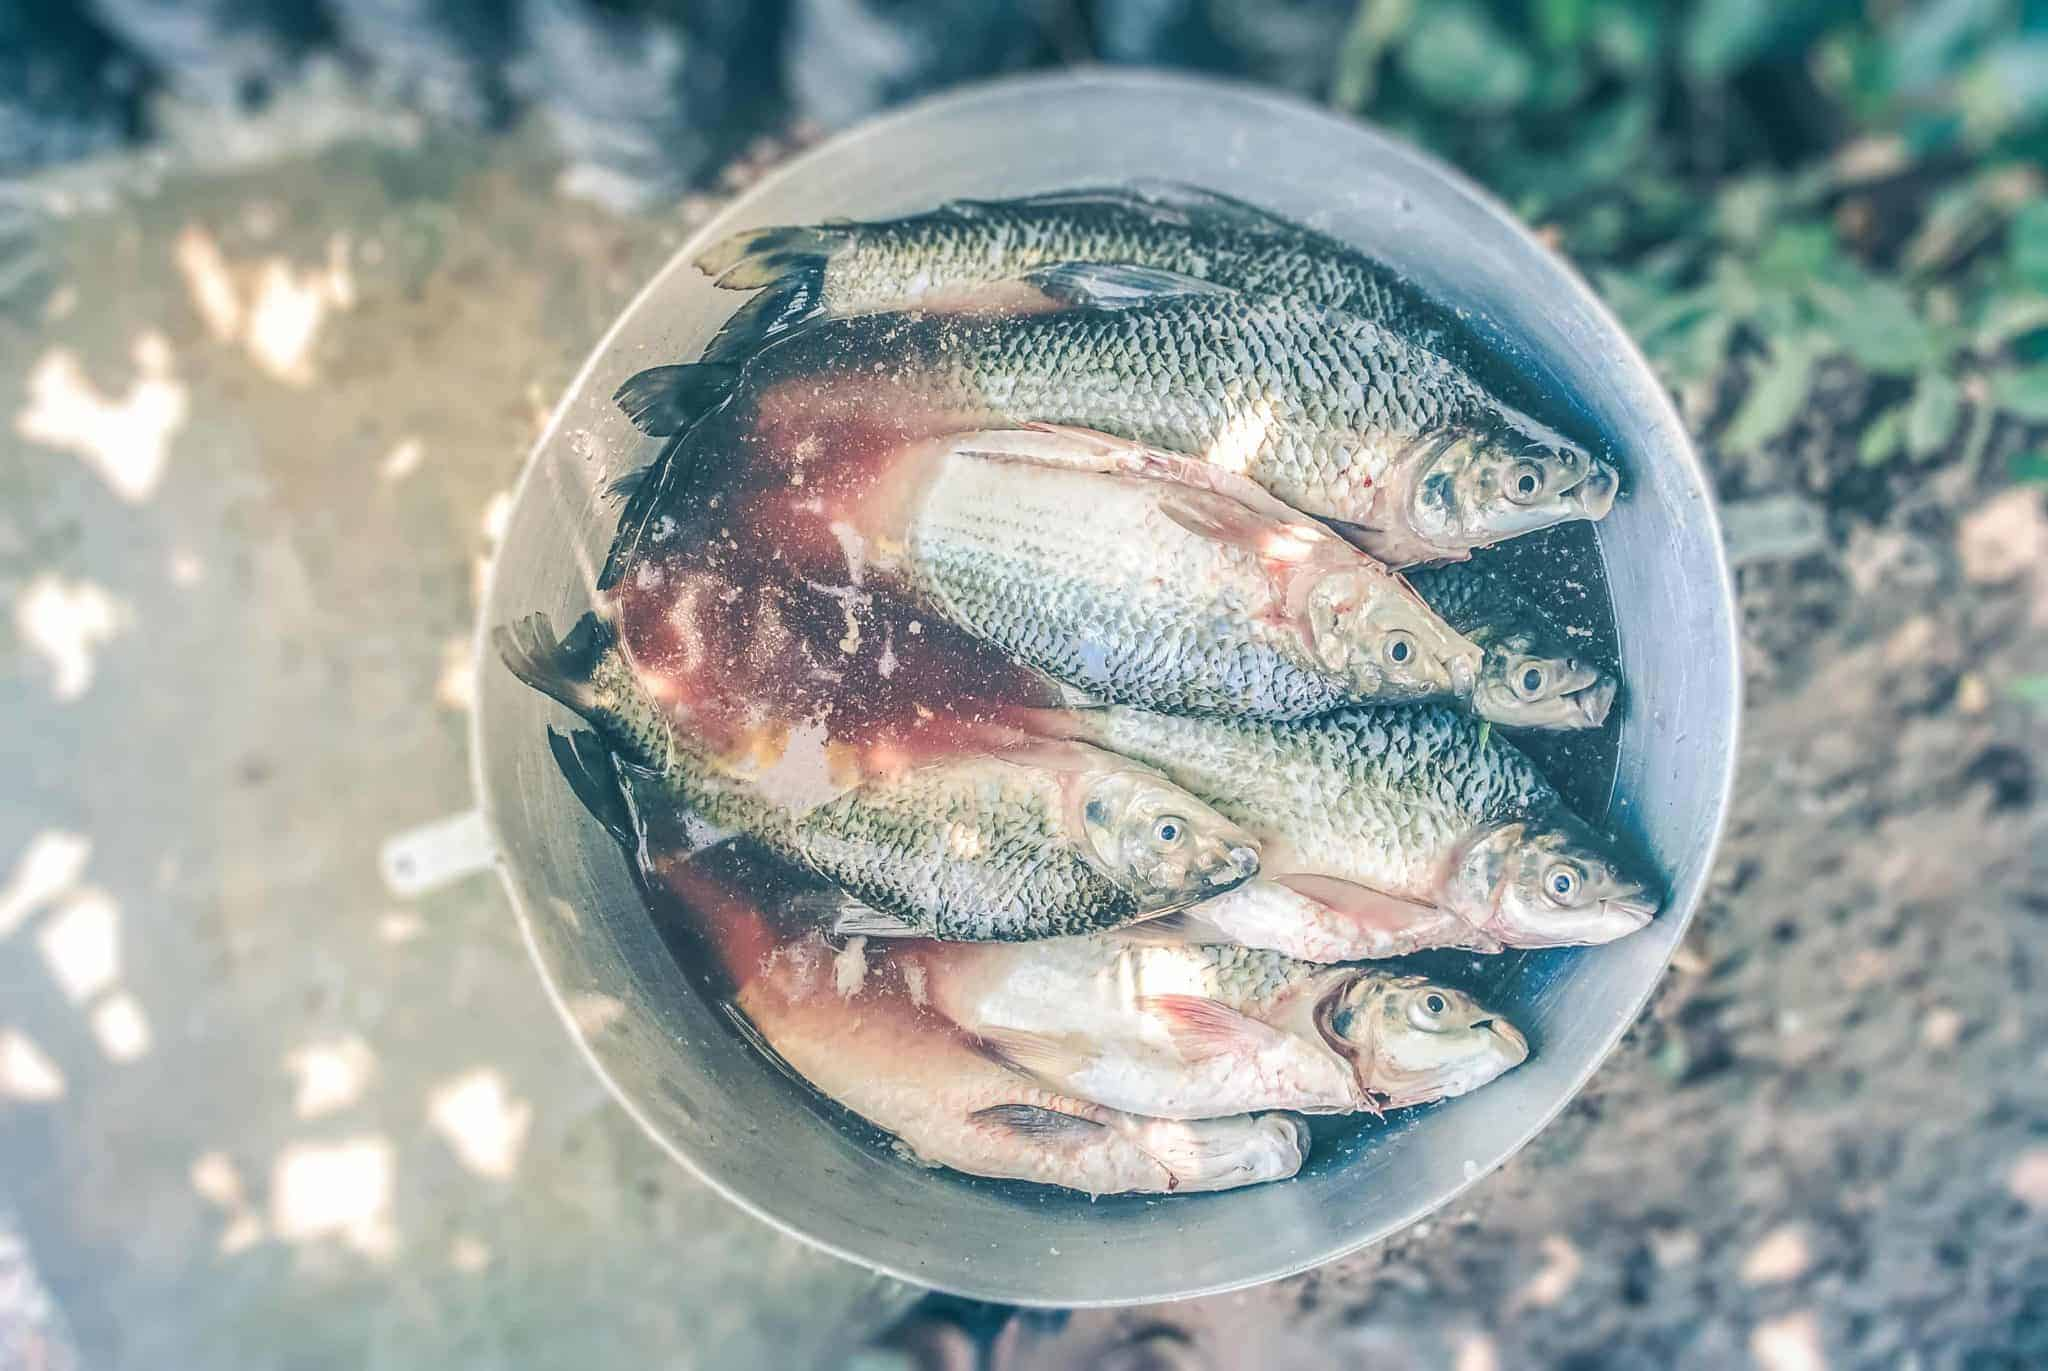 Image of a bucket of fish.